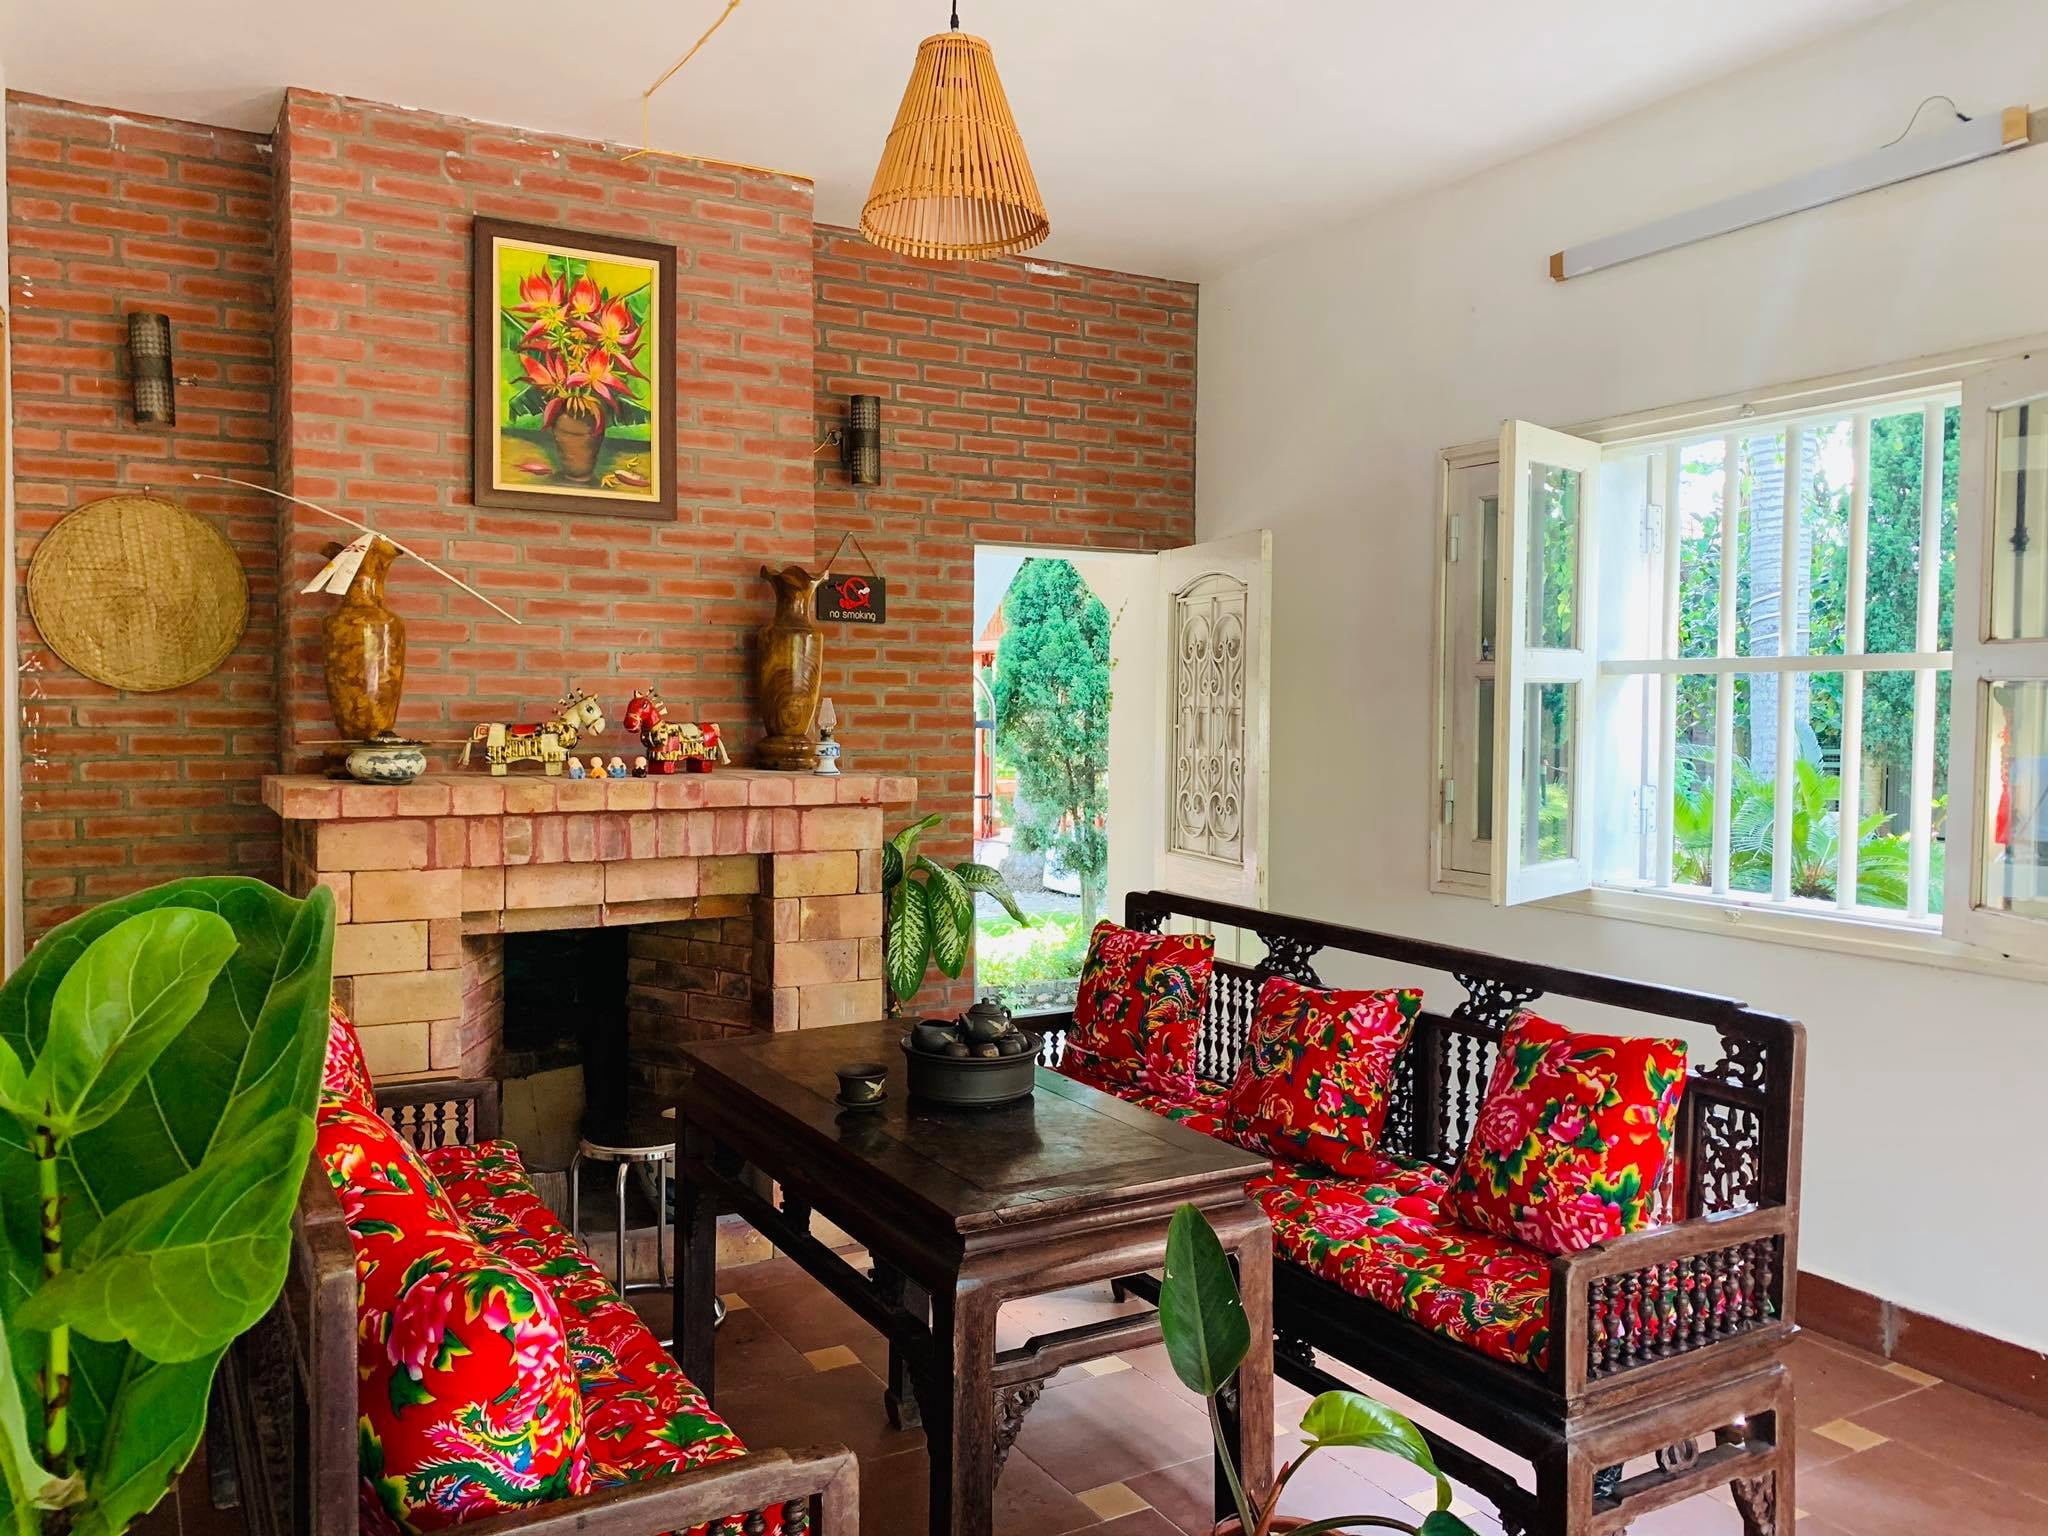 noi that hq house garden homestay son tay ha noi